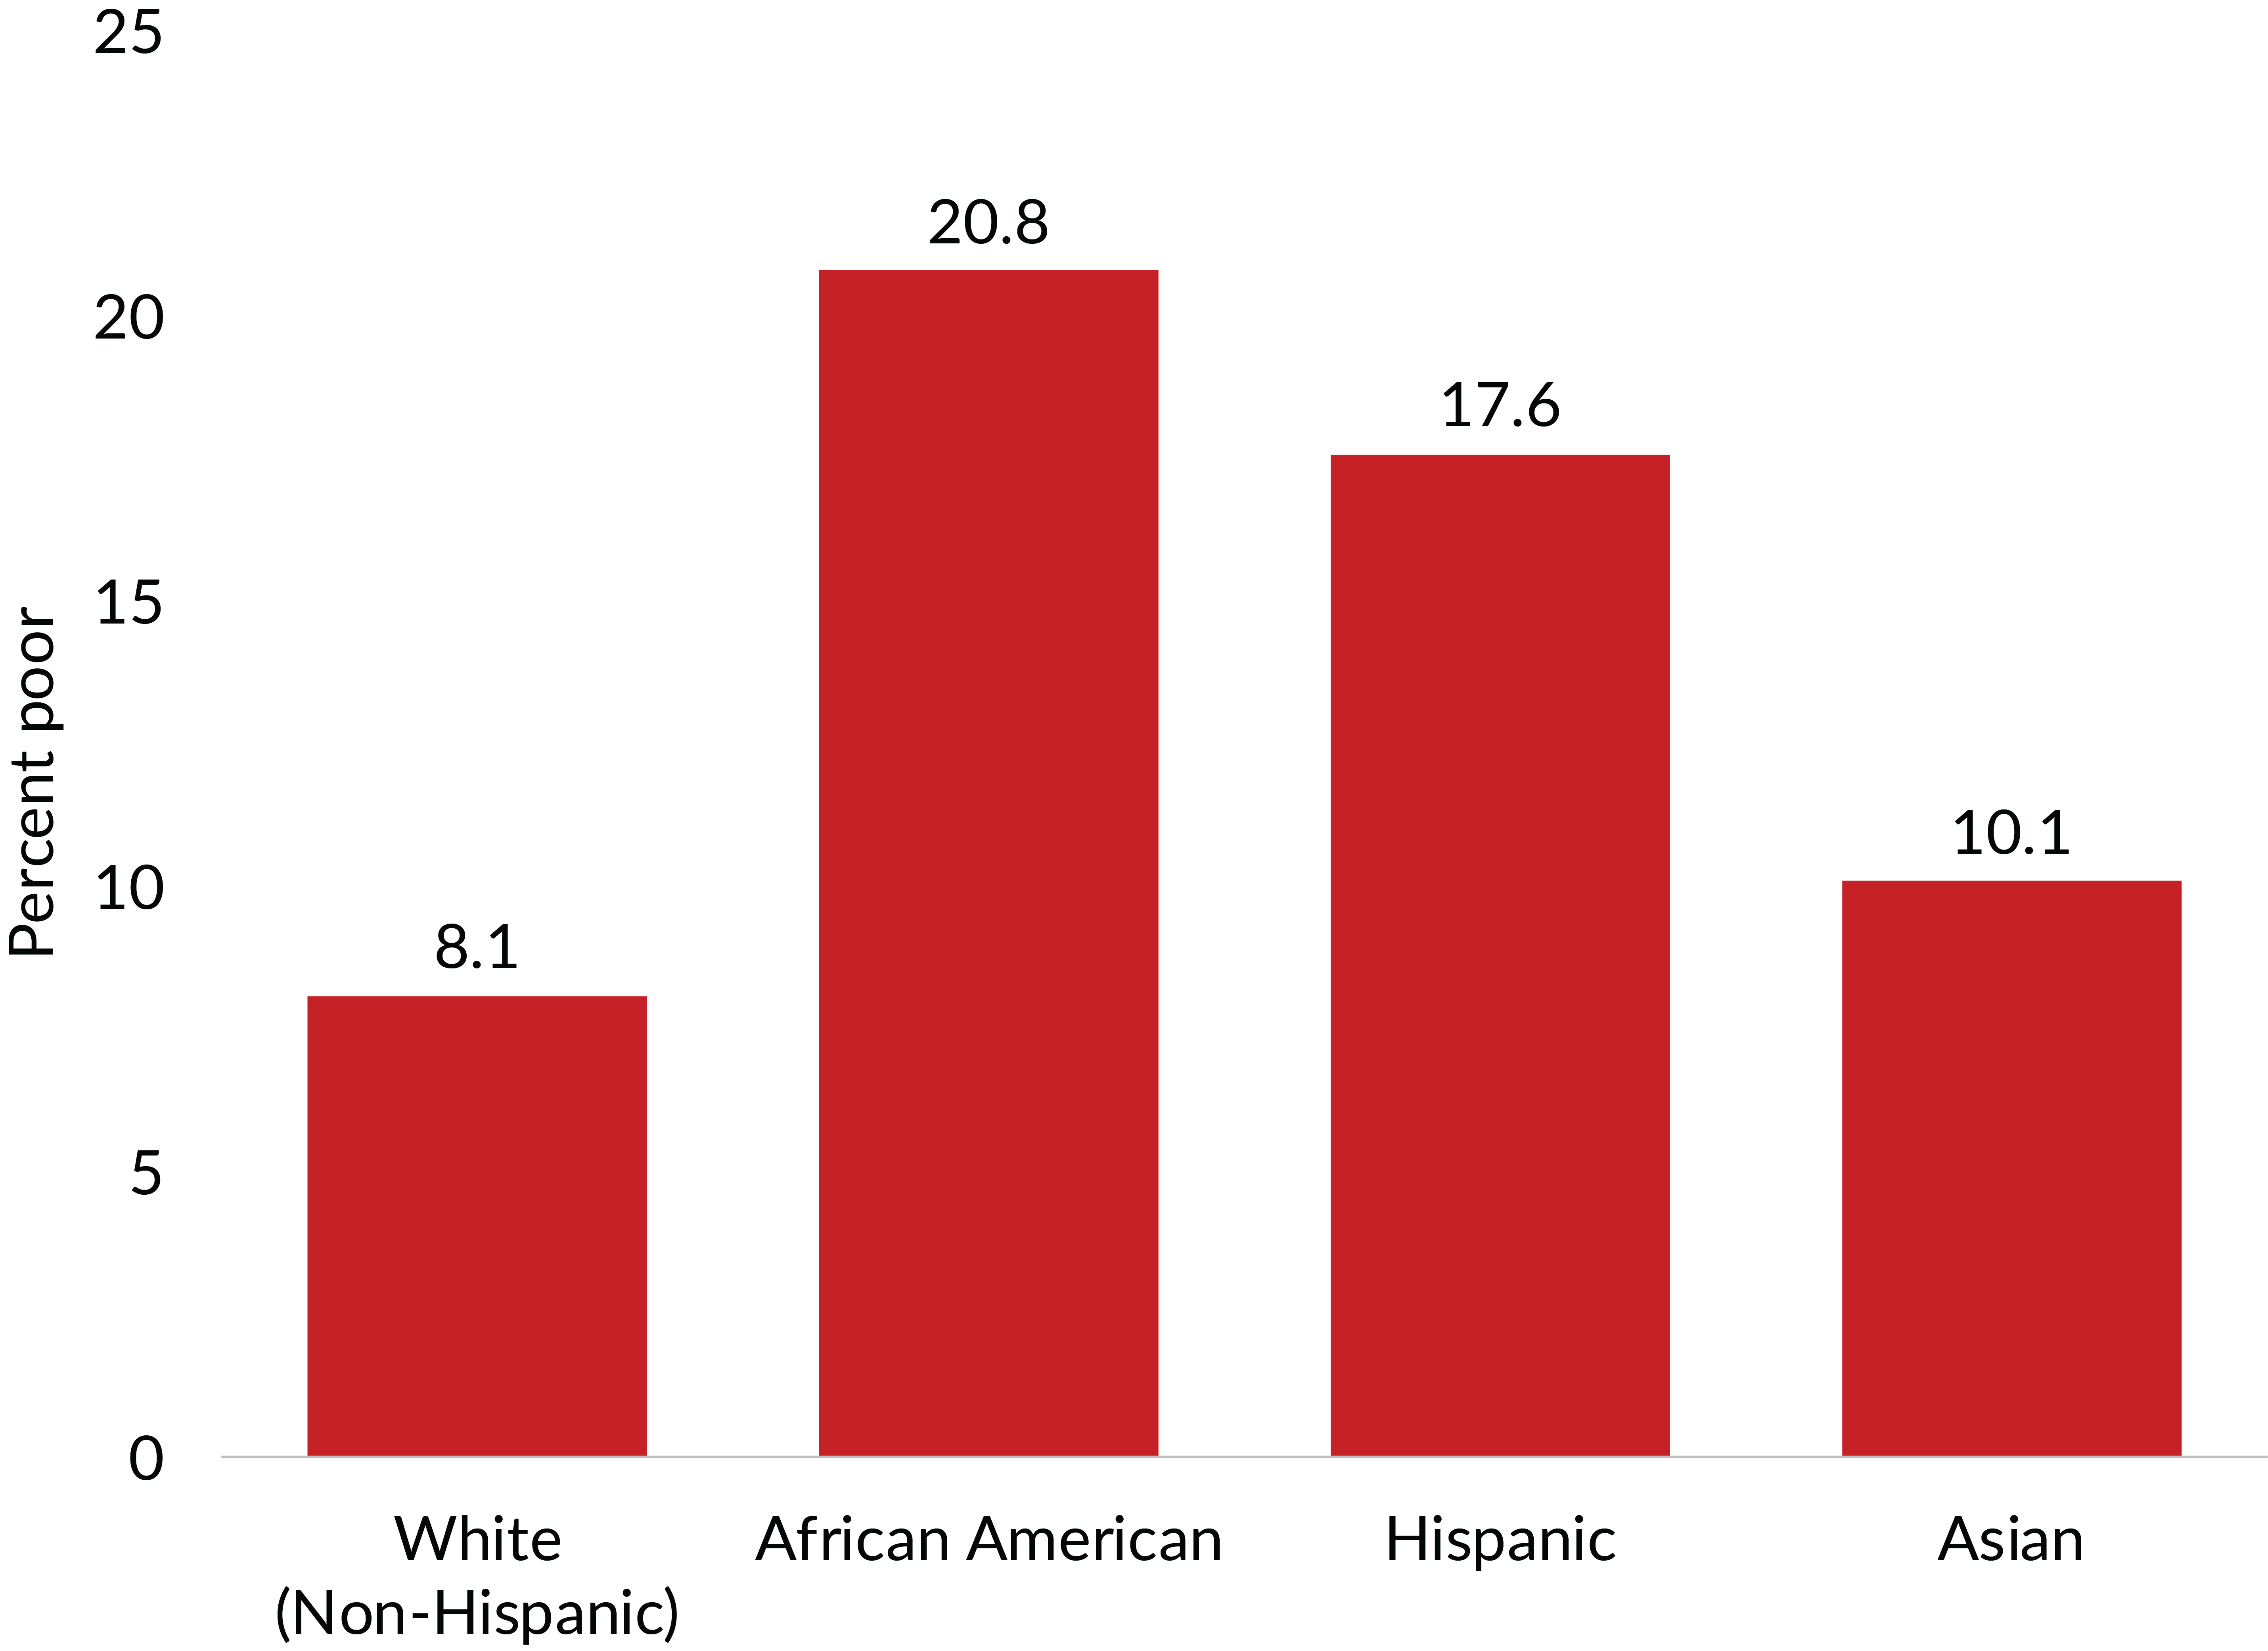 Figure 4. Poverty rates among African Americans were more than twice those of non-Hispanic white and Asian Americans in 2018. Source: U.S. Census Bureau, Income and Poverty in the United States: 2018. Table B-1, p. 50.